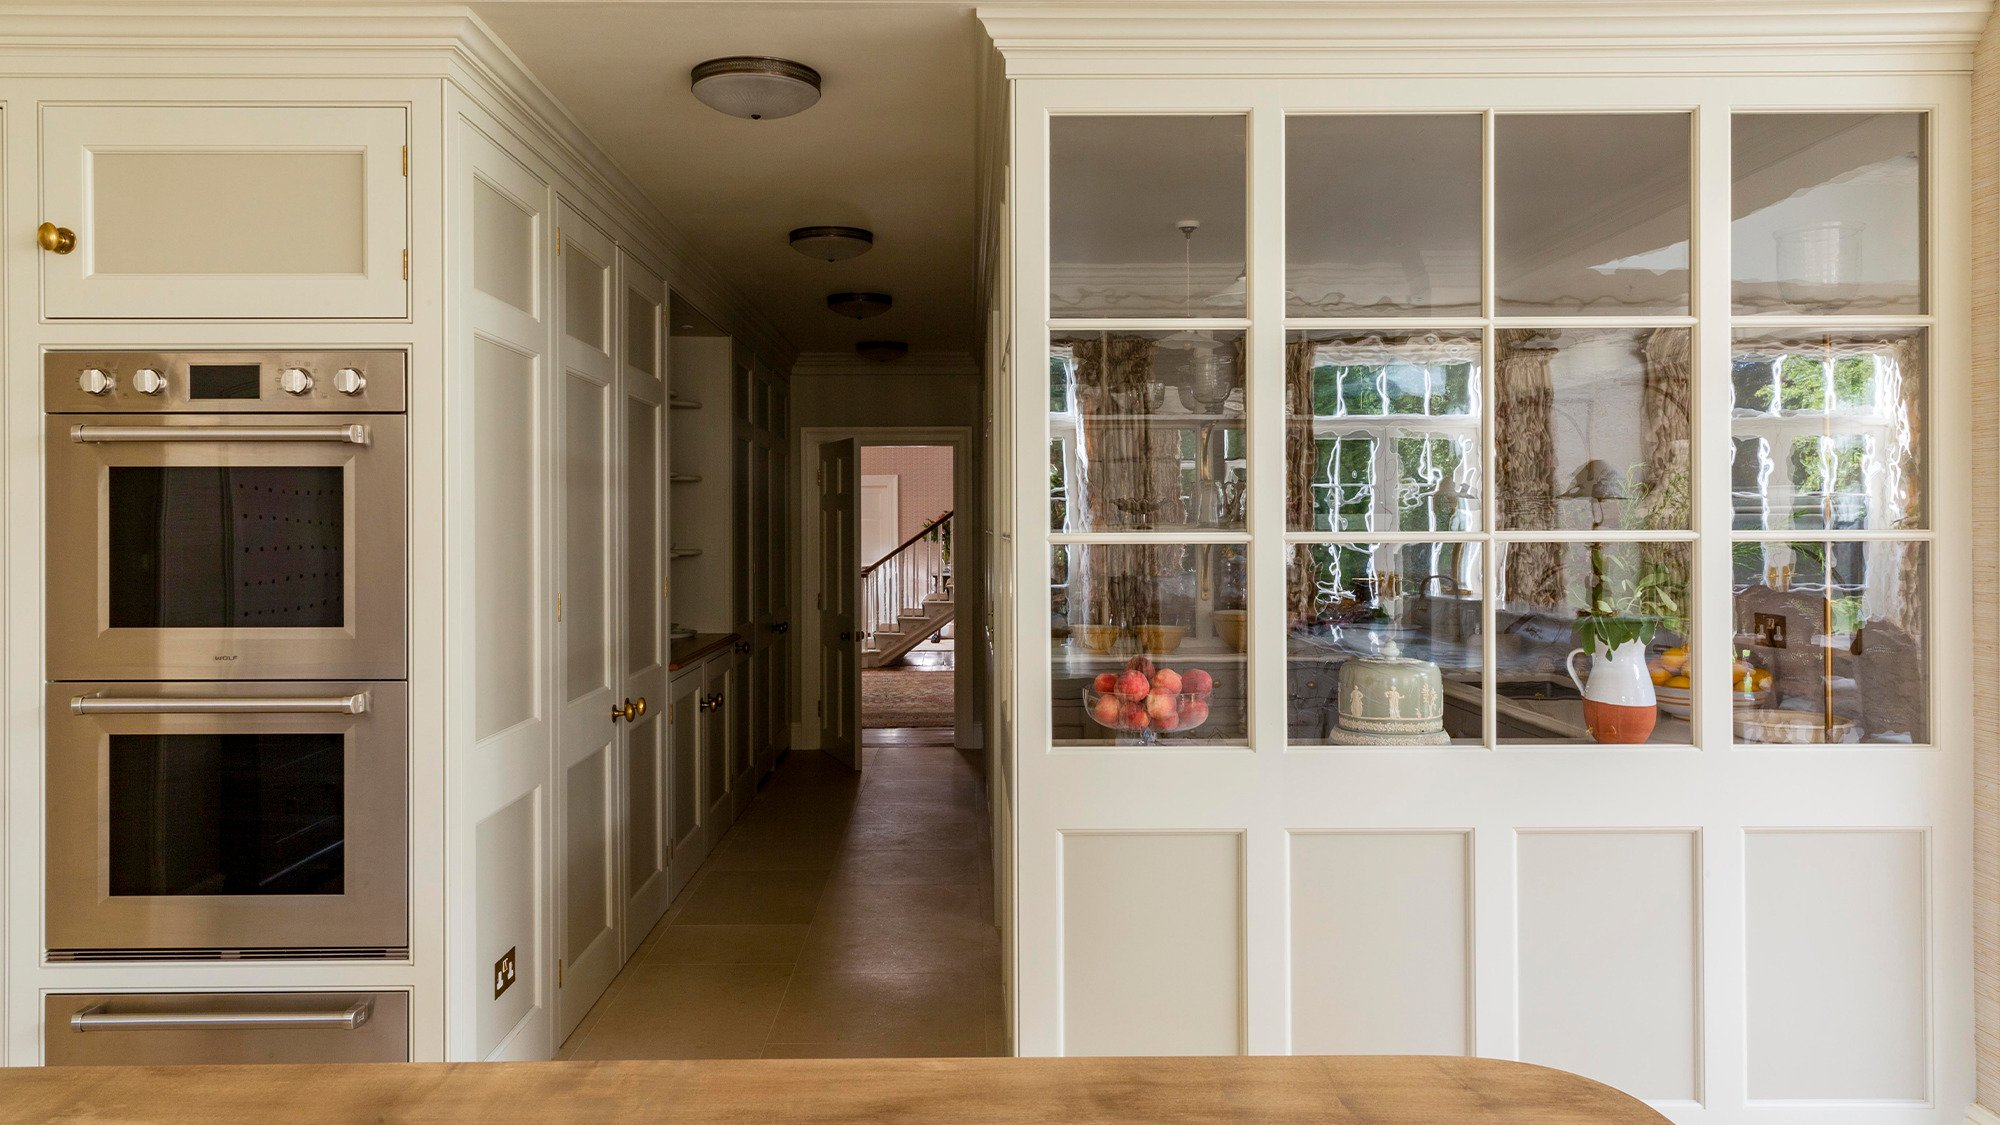 Cold storage room for a classic English kitchen